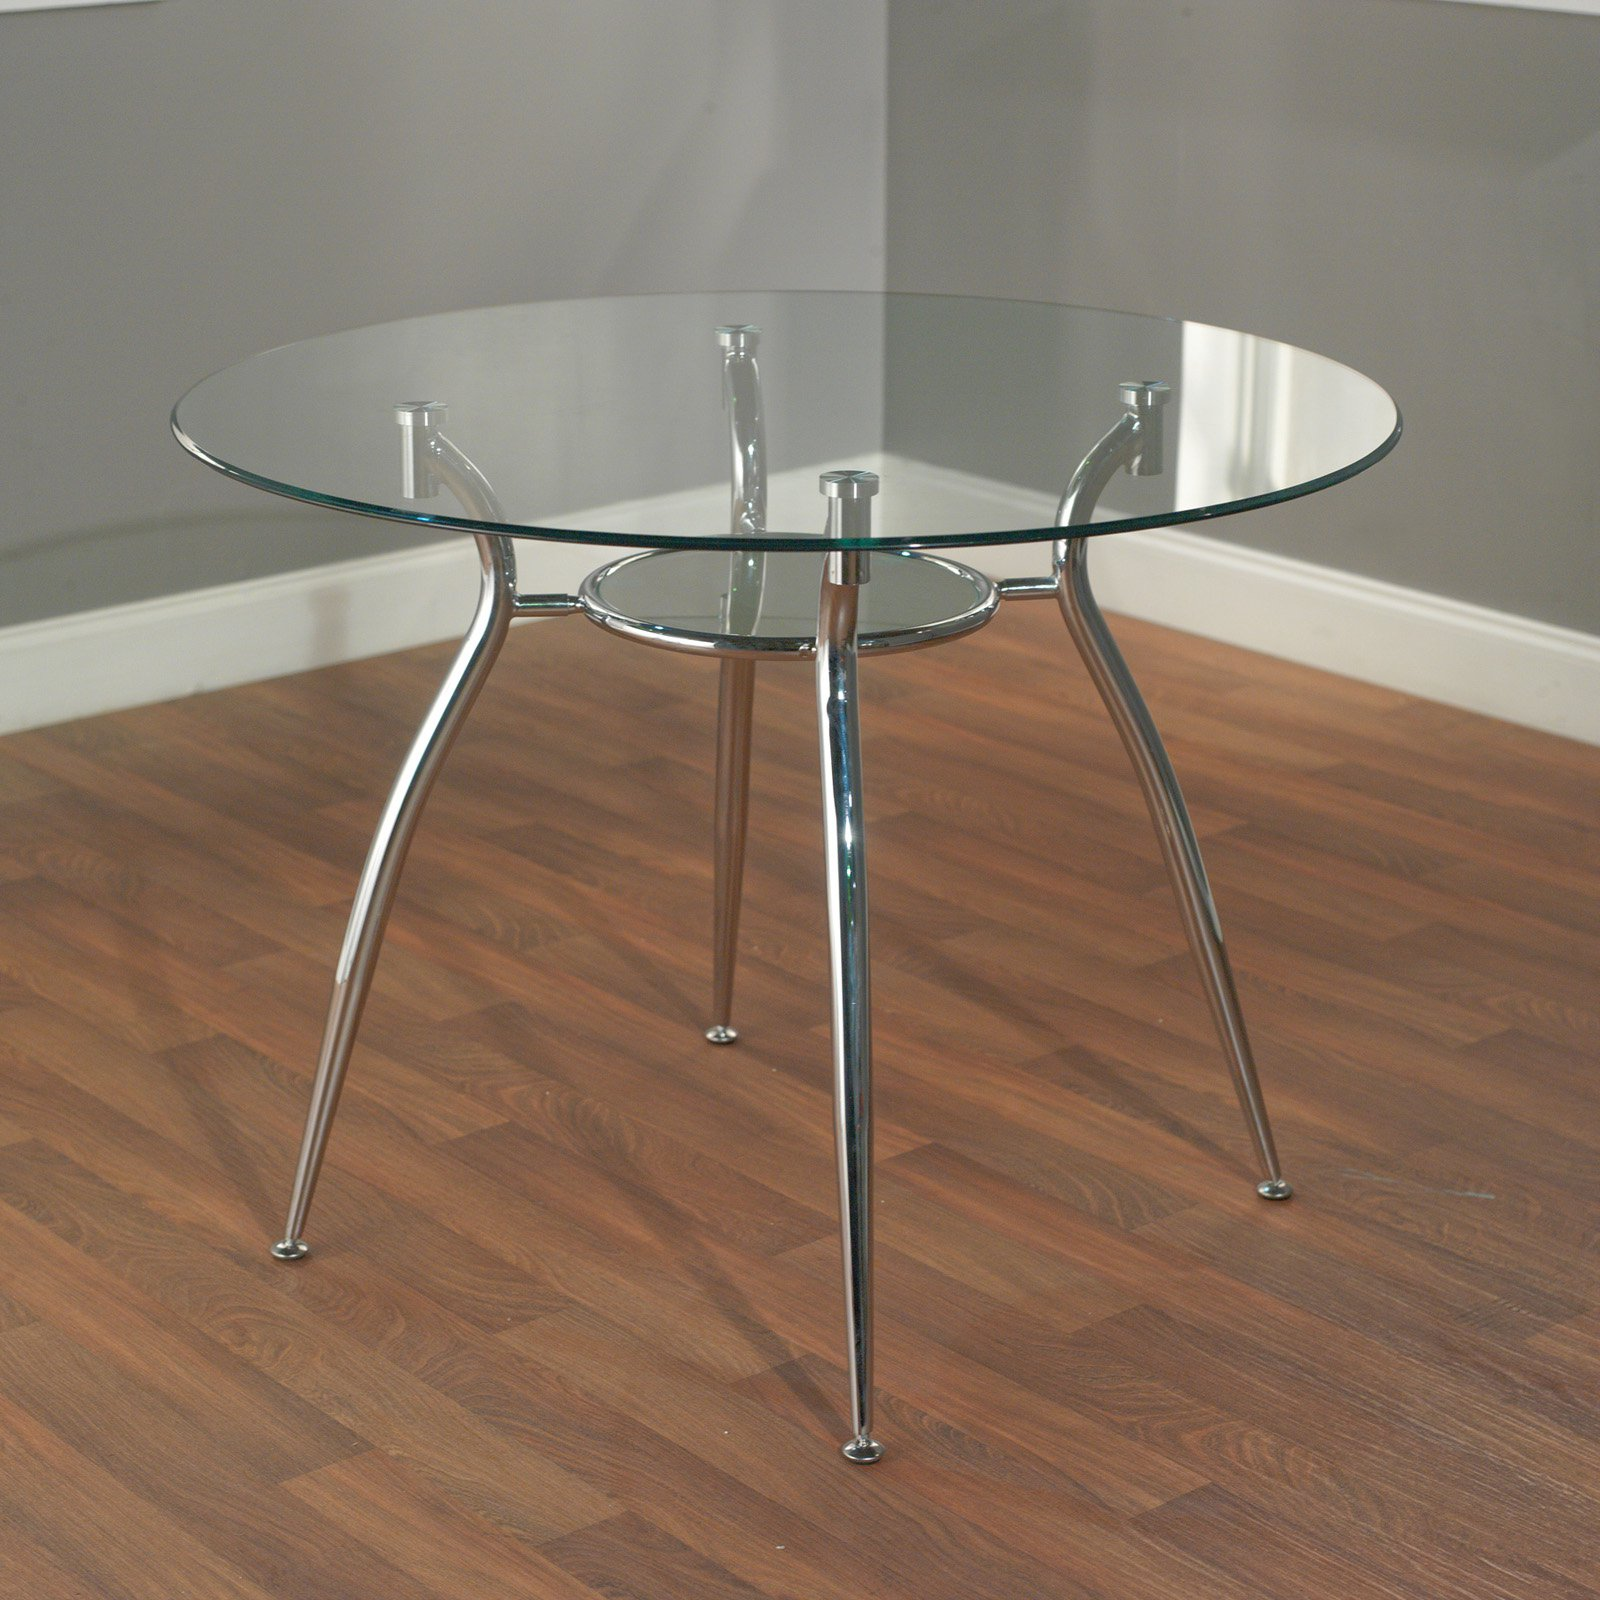 Mabel Glass Top and Metal Dining Table, Box 1 of 2 by Generic